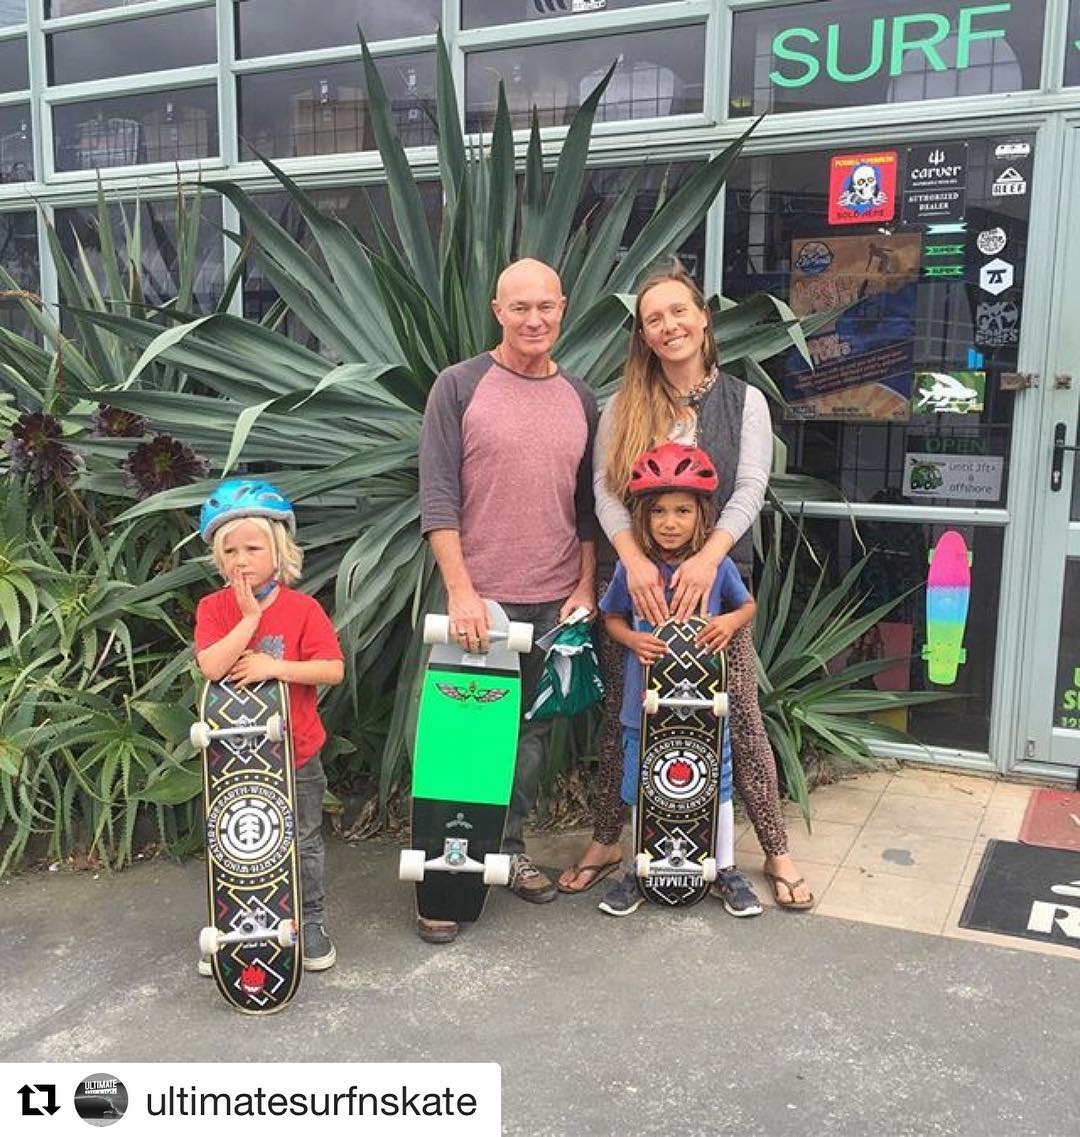 #Repost @ultimatesurfnskate with @repostapp ・・・ This awesome family just stopped in from Mangawhai and set themselves up with some skateboards for the Mangawhai skate park. They also happen to have an organic farm and wellness retreat called...